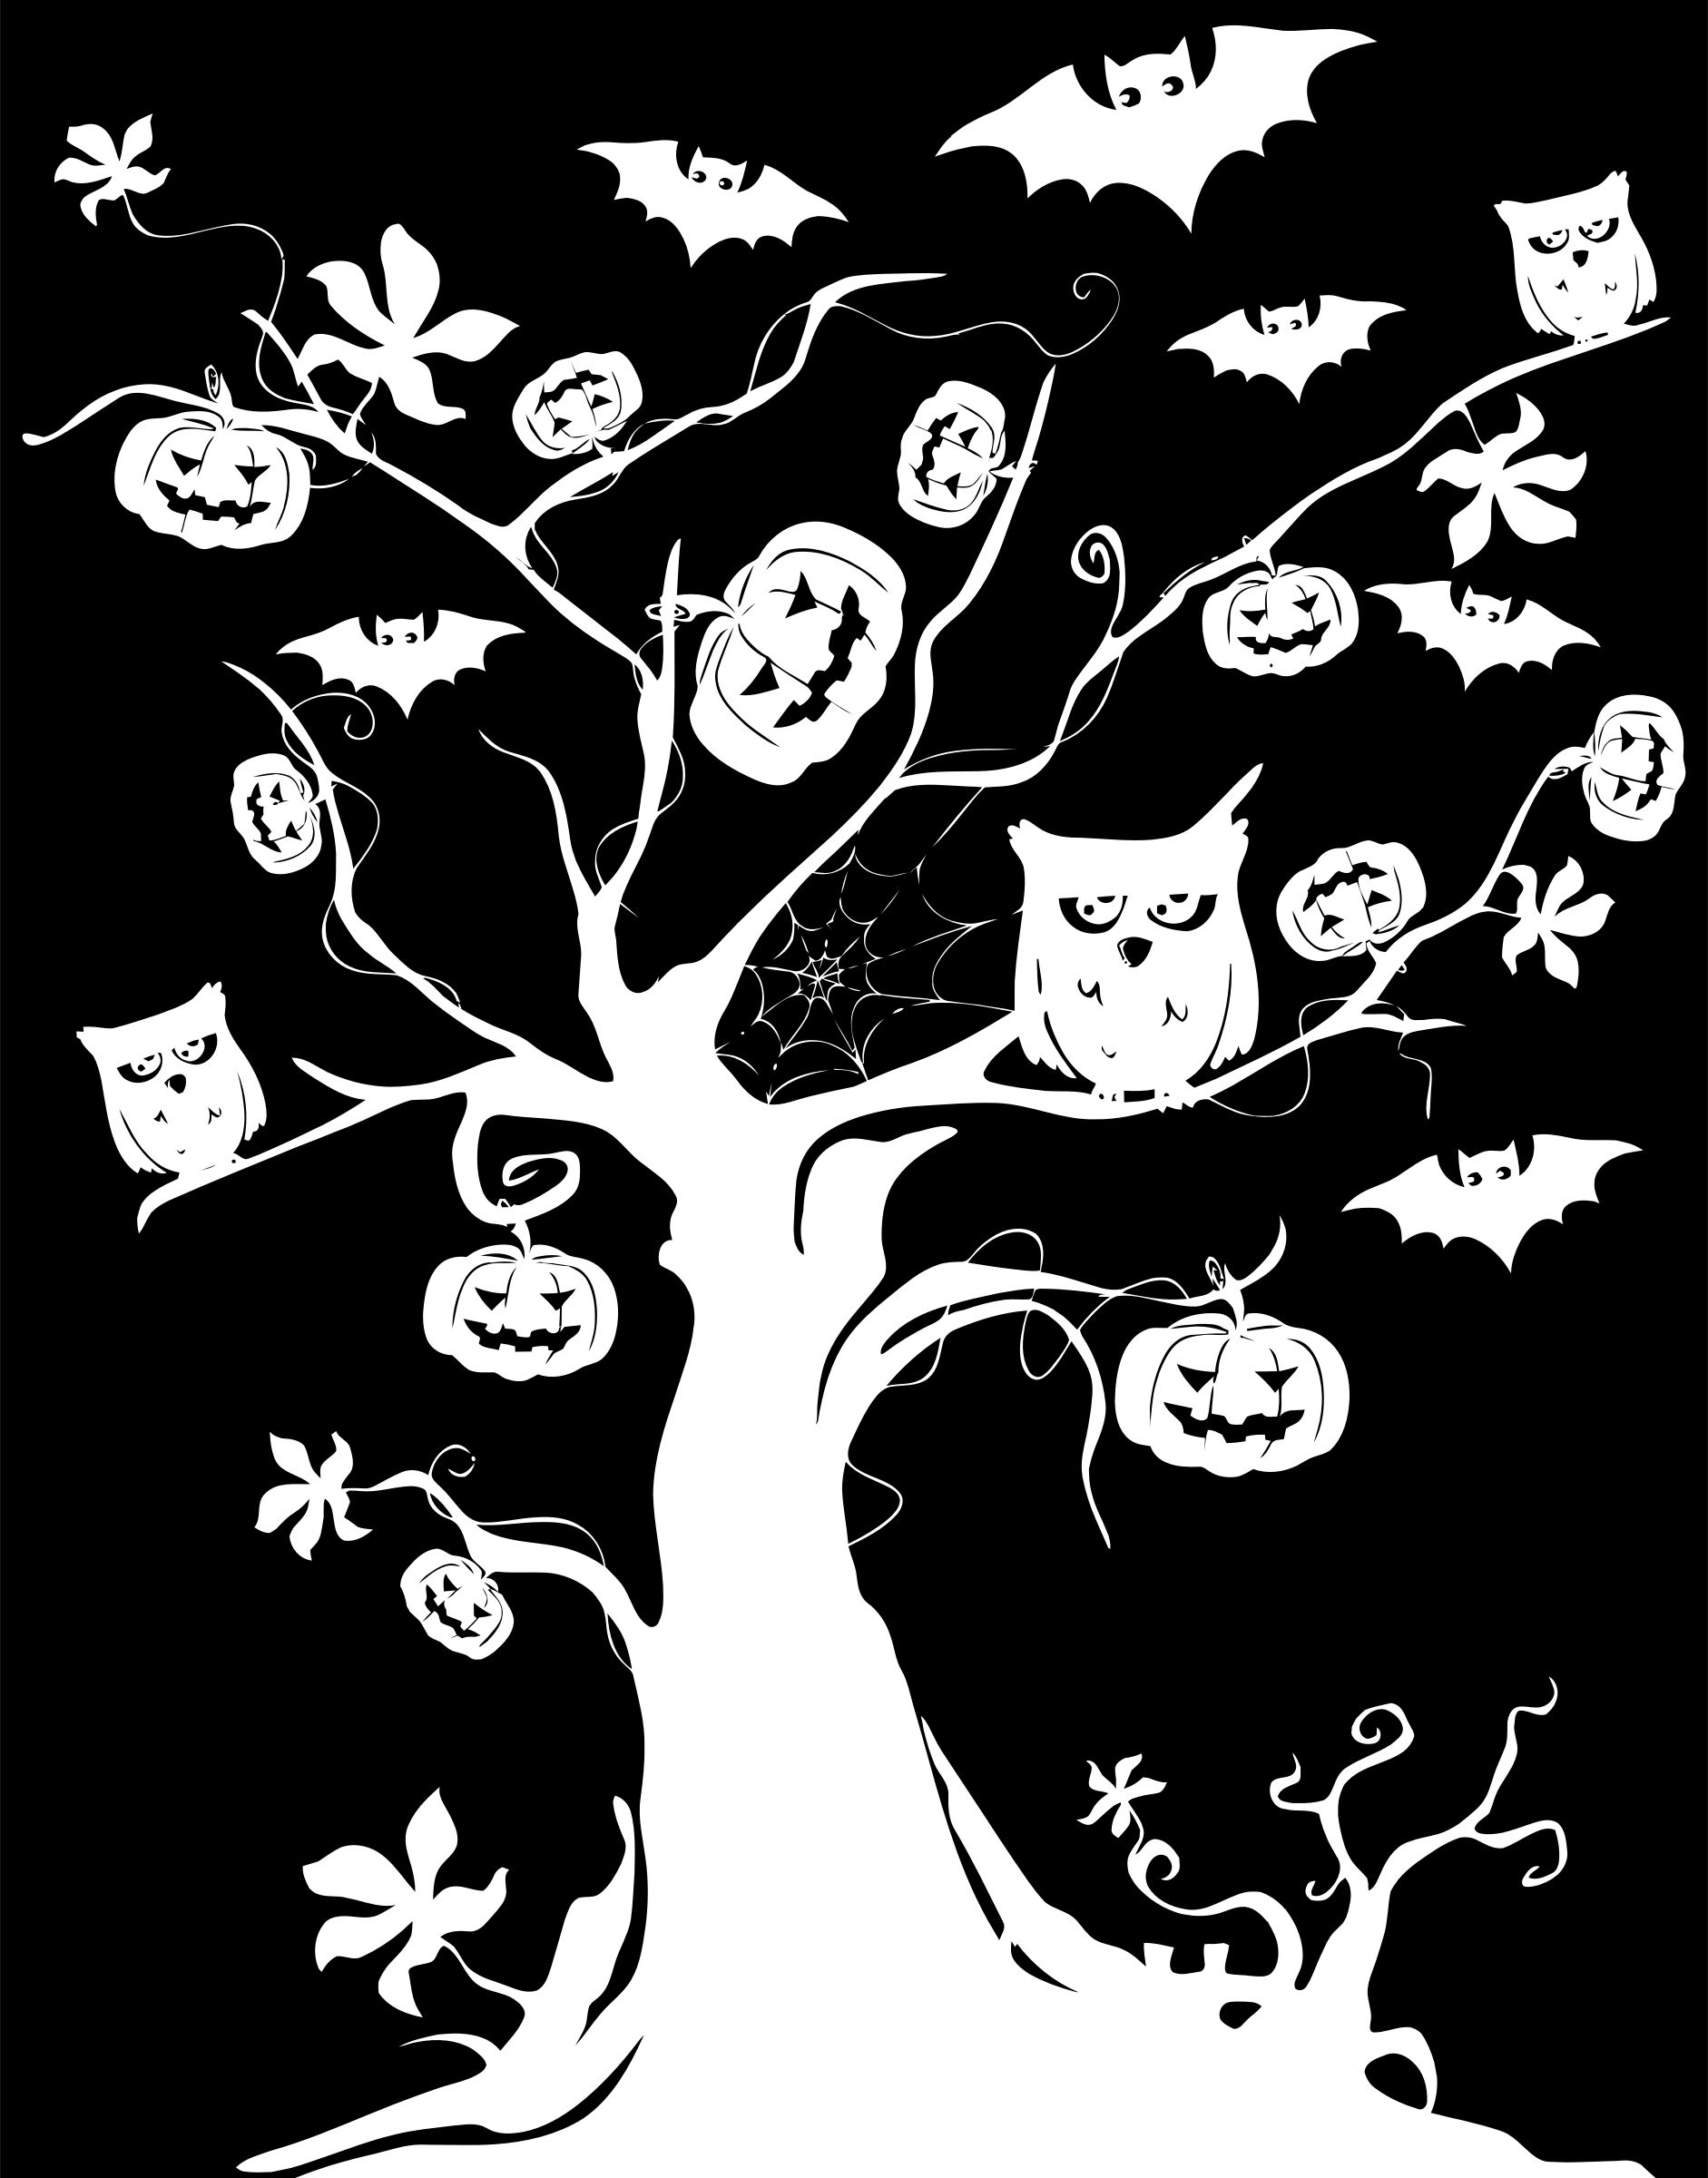 Halloween Tree Inverse Silhouette by GDJ